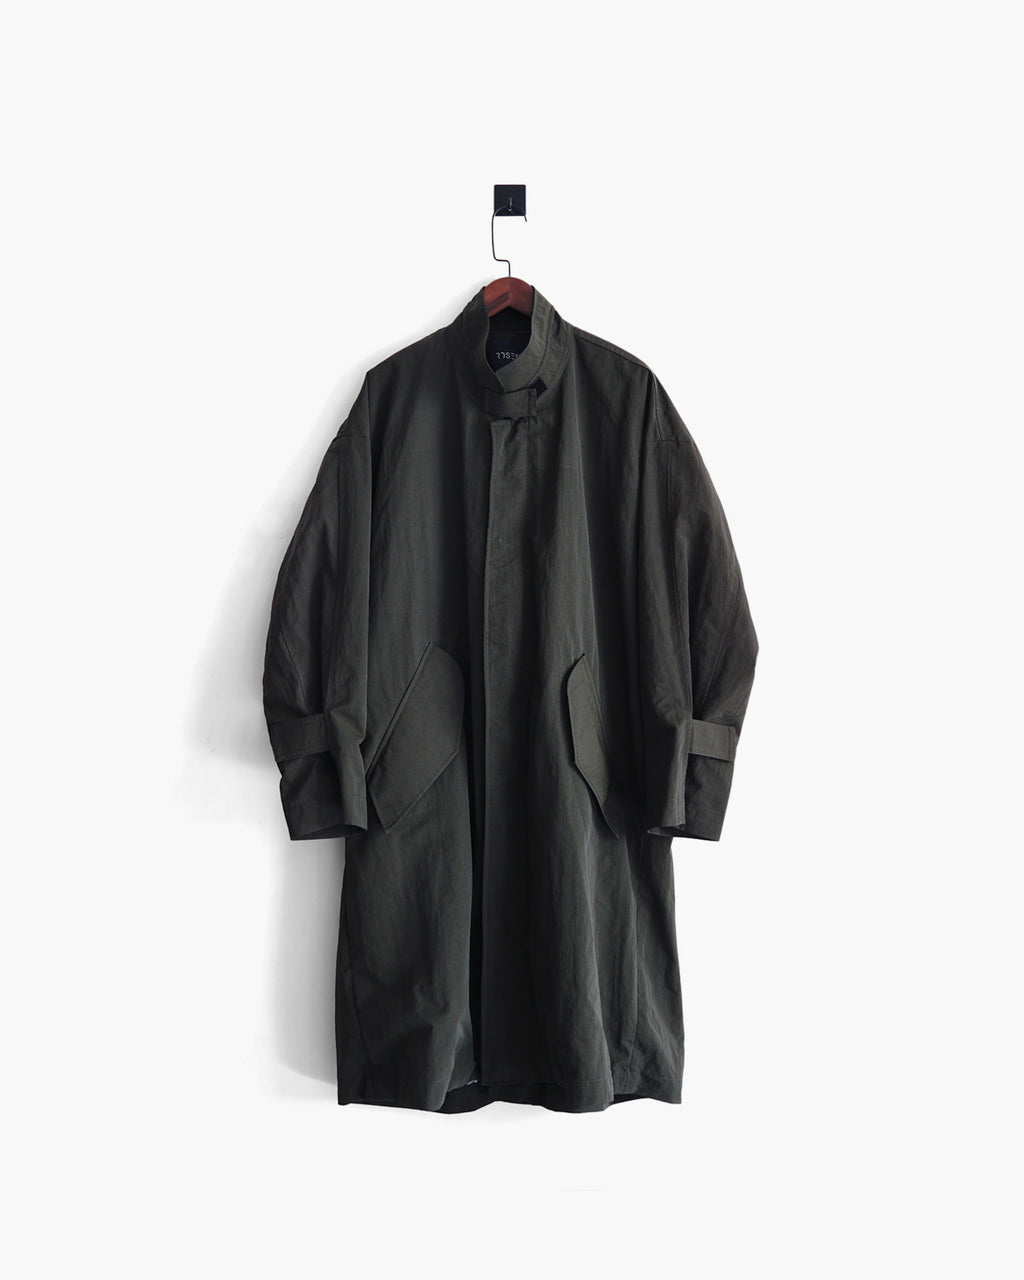 ROSEN-X Orwellian Coat in Nylon Sz 1-2